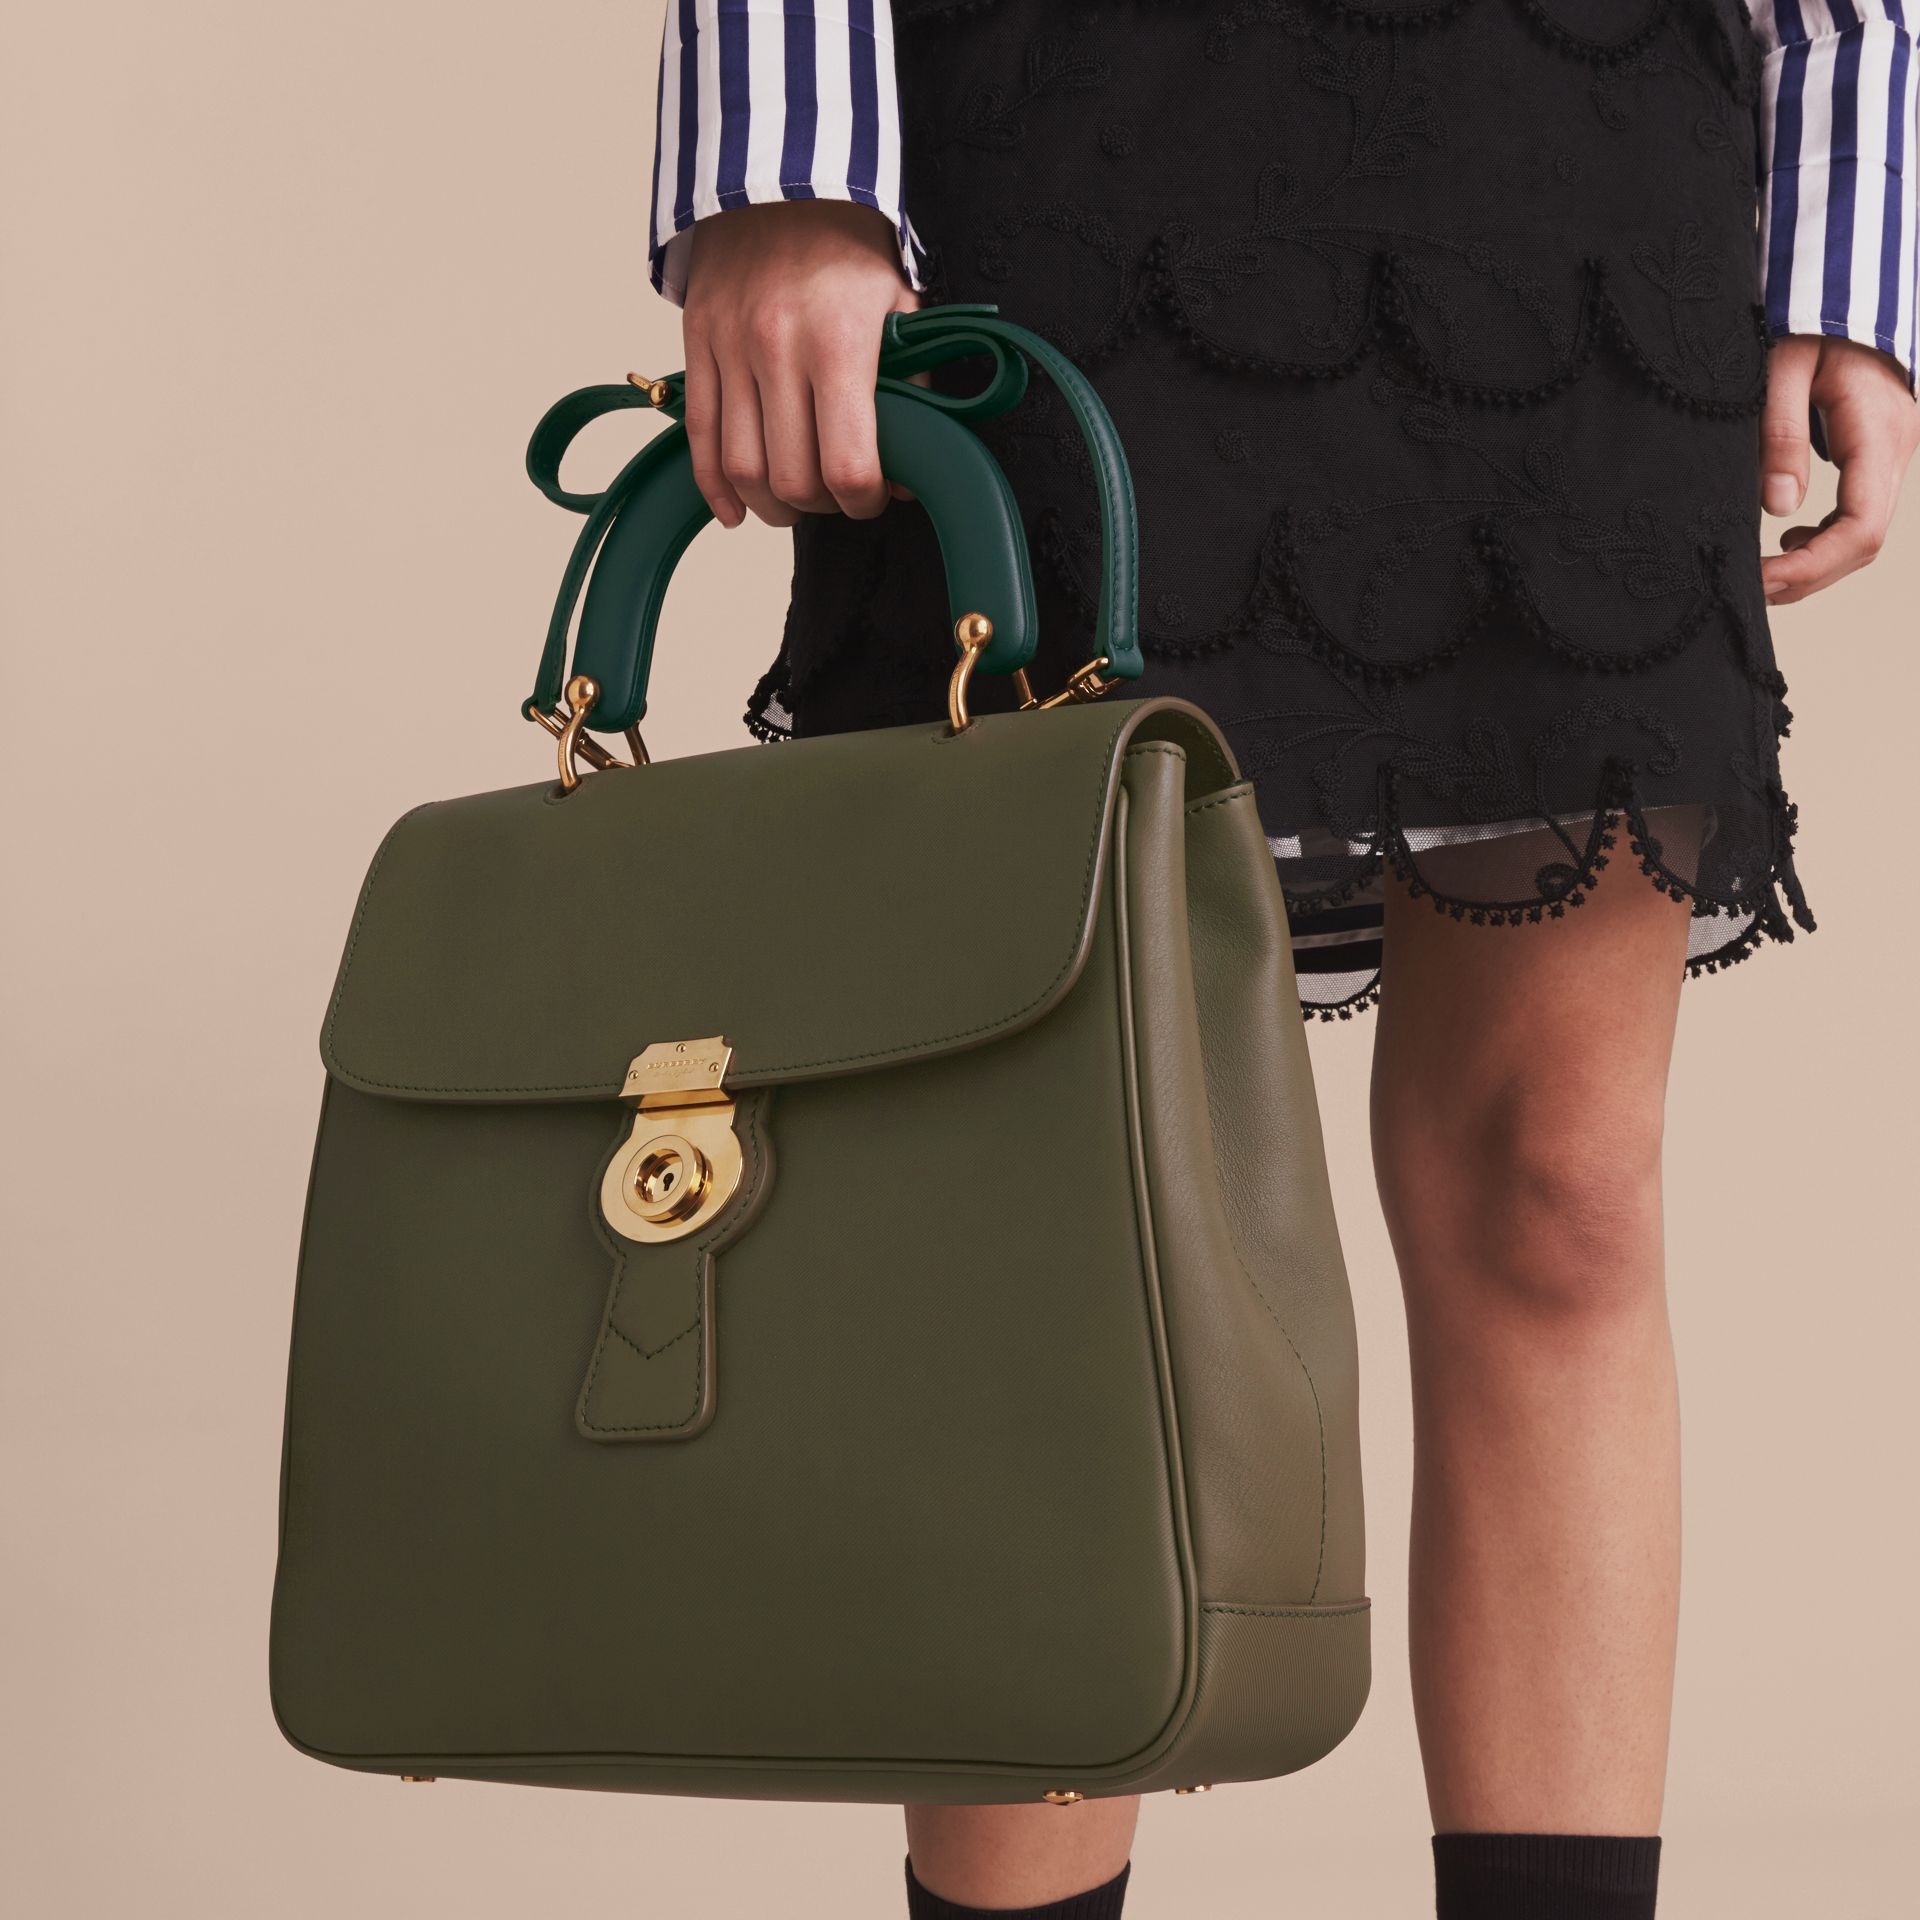 The Large DK88 Top Handle Bag in Moss Green - Women | Burberry - gallery image 7